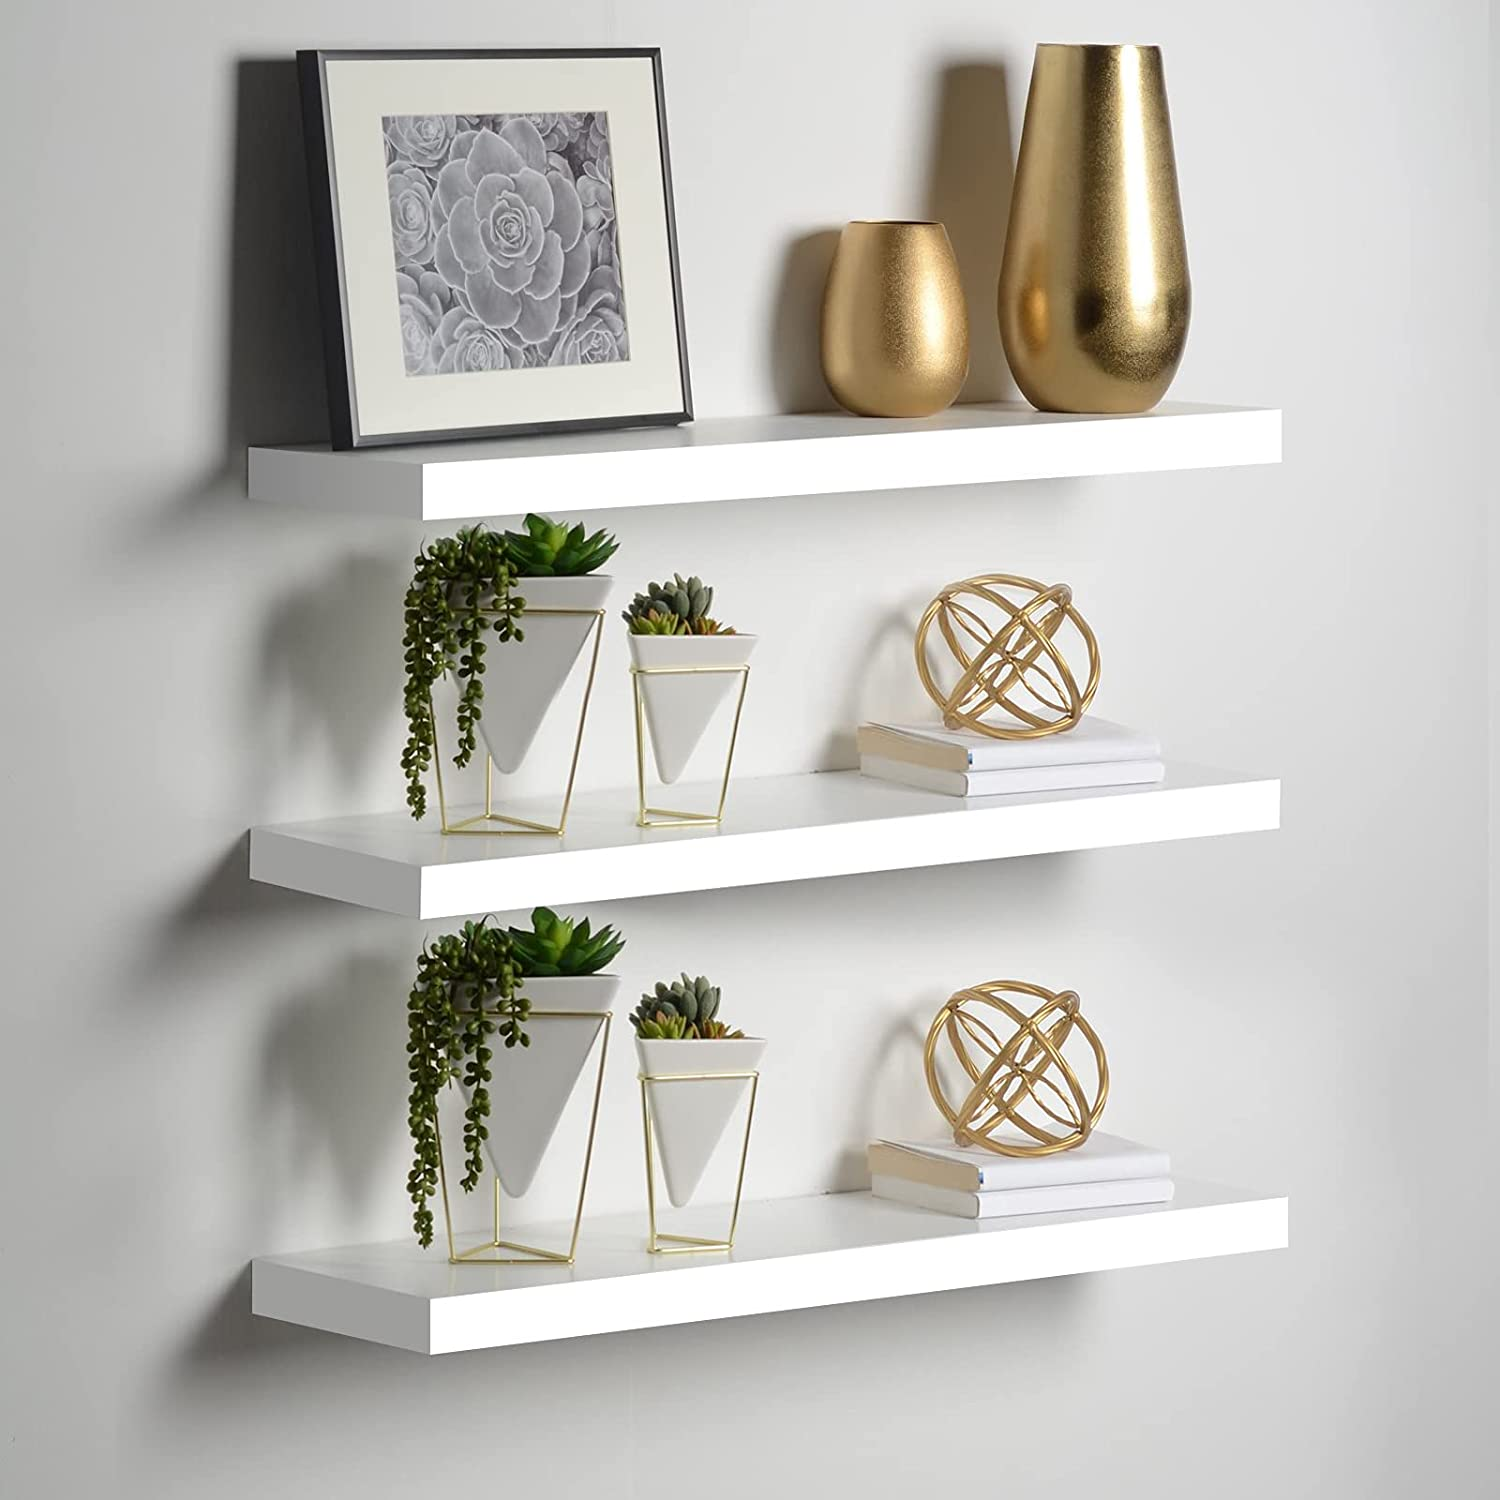 Wood Wall Floating Shelf,Fashion Storage Organizer Shelves for Home Living Room Bedroom Study Decoration,Wall Shelf Set with Hidden Brackets Wall Mounted Floating Shelves,White